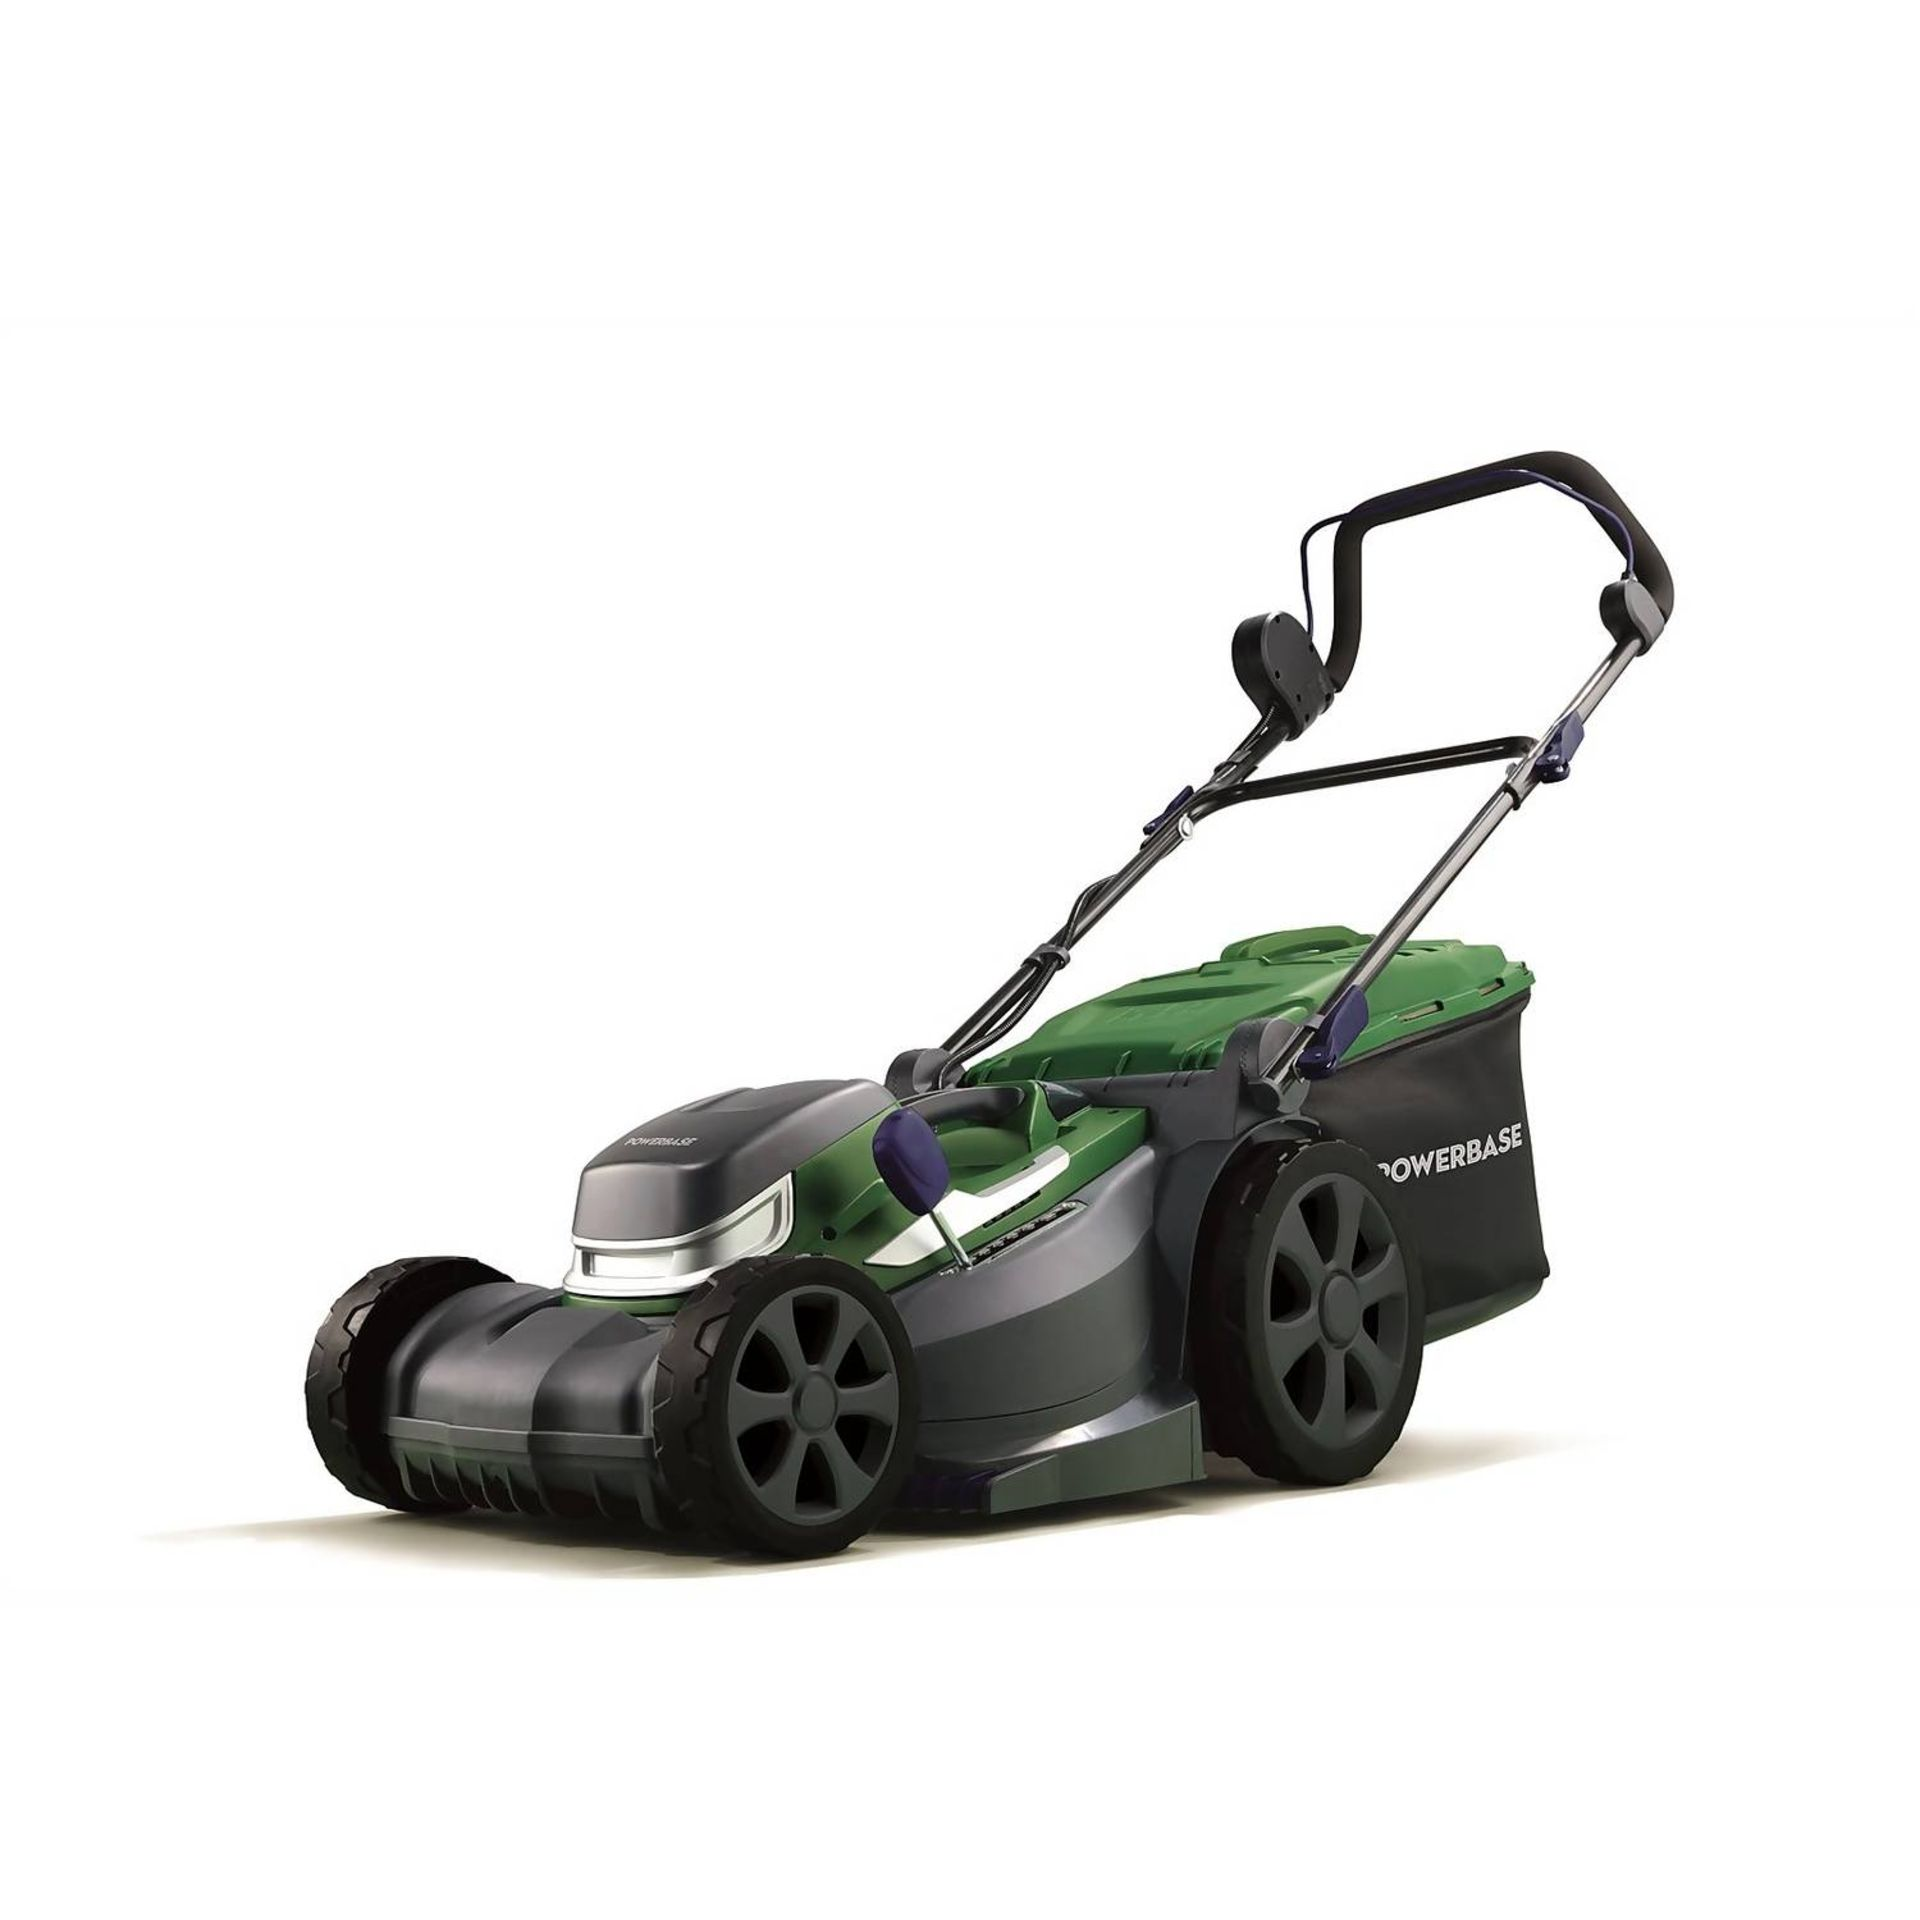 (P10) 1x Powerbase 40cm 40V Cordless Lawn Mower RRP £199. New, Sealed Undelivered Item.